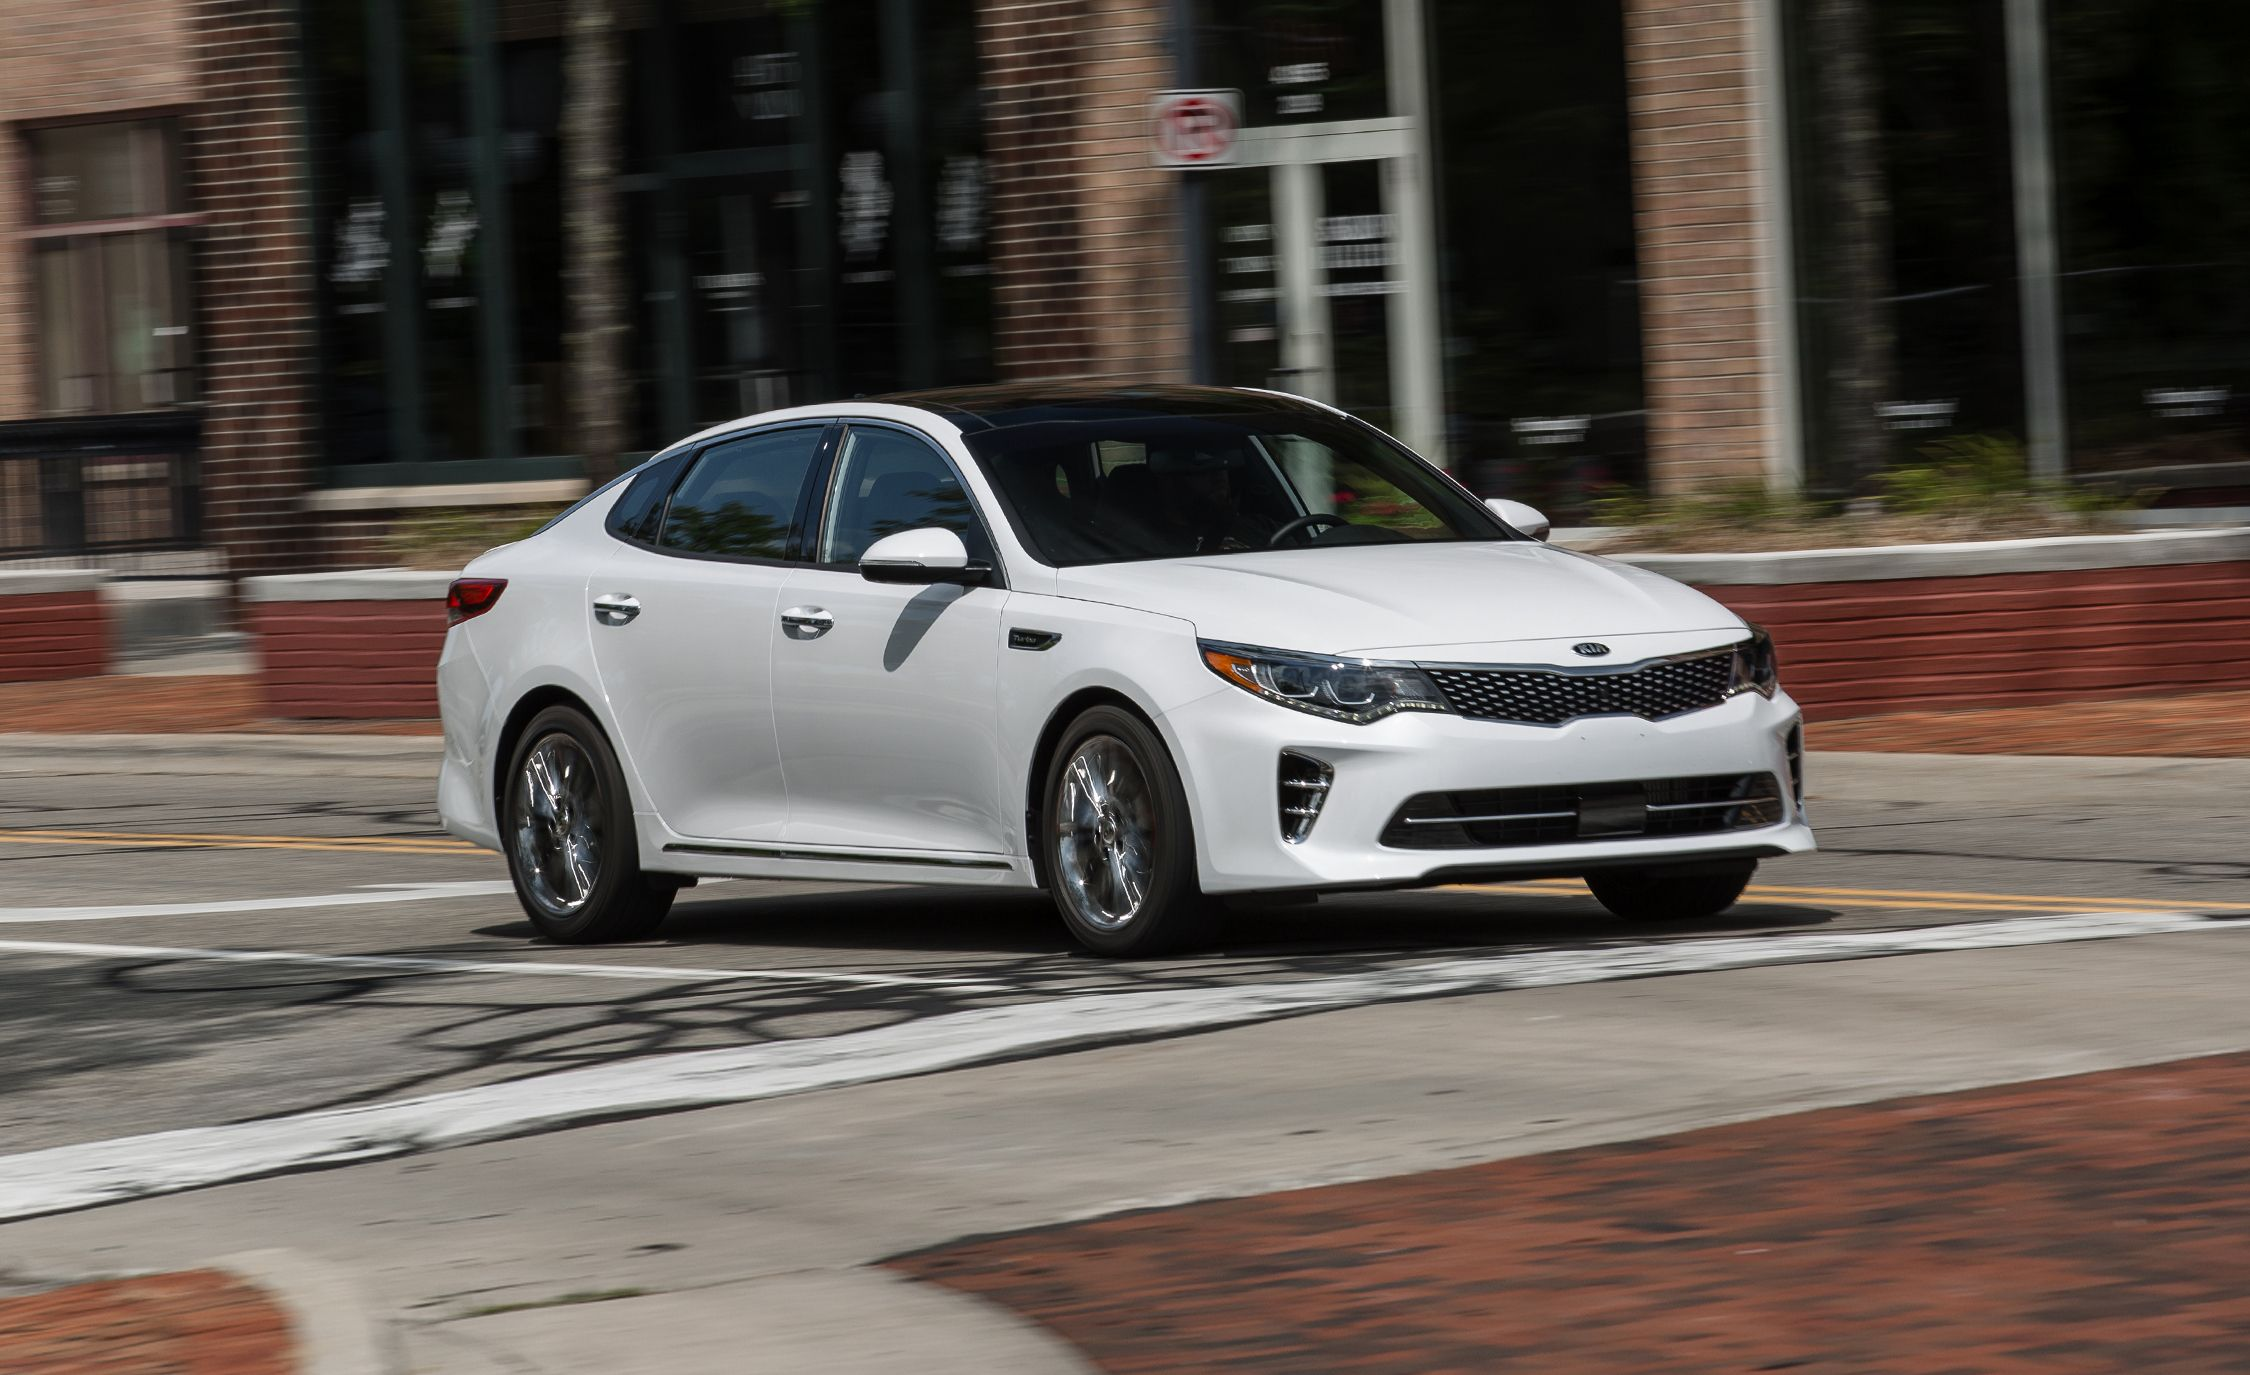 2017 kia optima sedan hybrid and plug in review car and driver rh caranddriver com Kia Optima Maintenance 2007 Kia Optima Cigerette Lighter